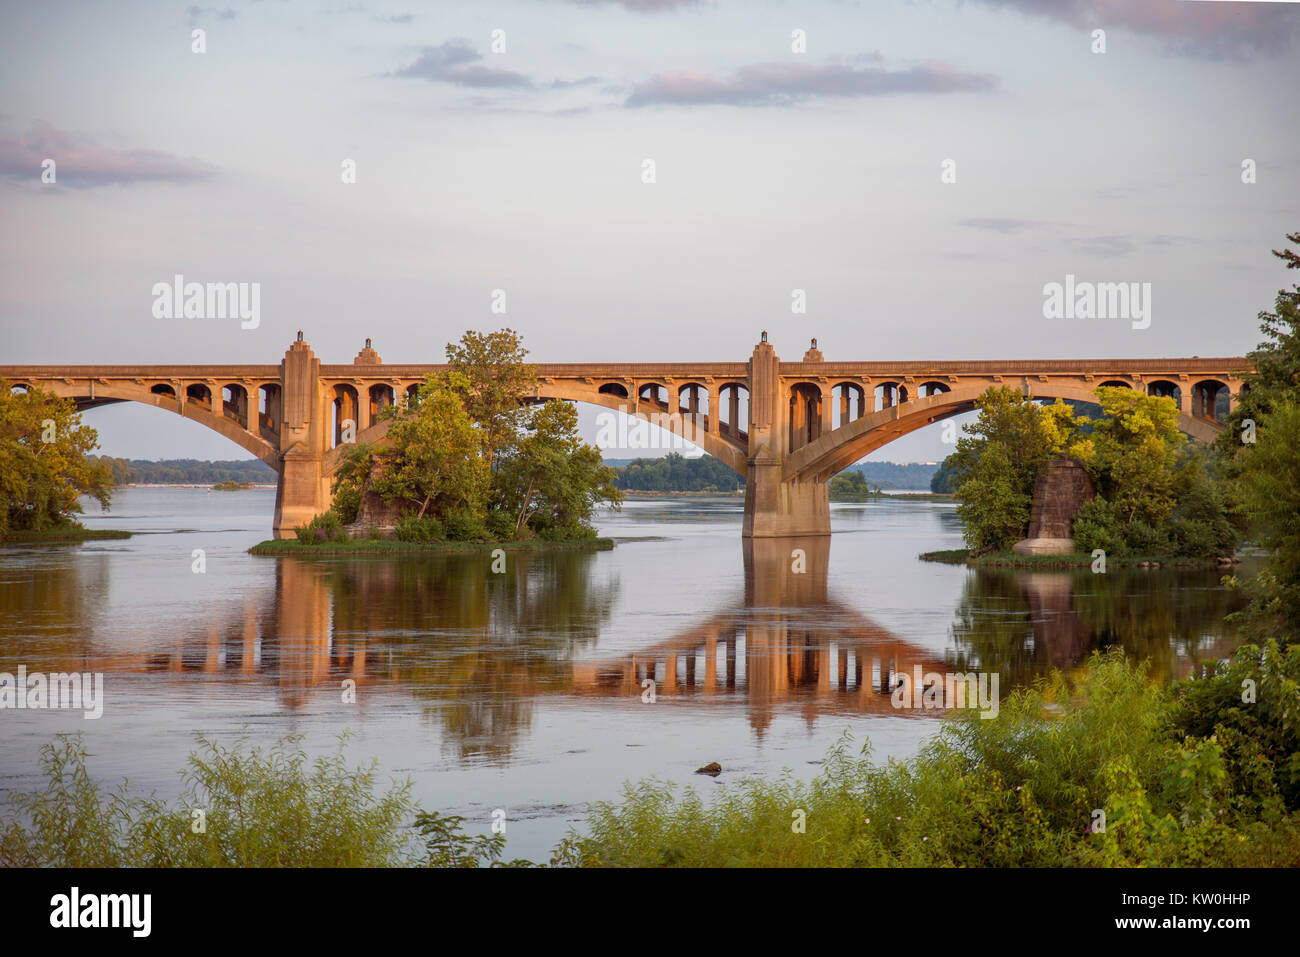 Veterans Memorial Bridge over the Susquehanna River, spanning Wrightsville PA and Columbia PA - Stock Image